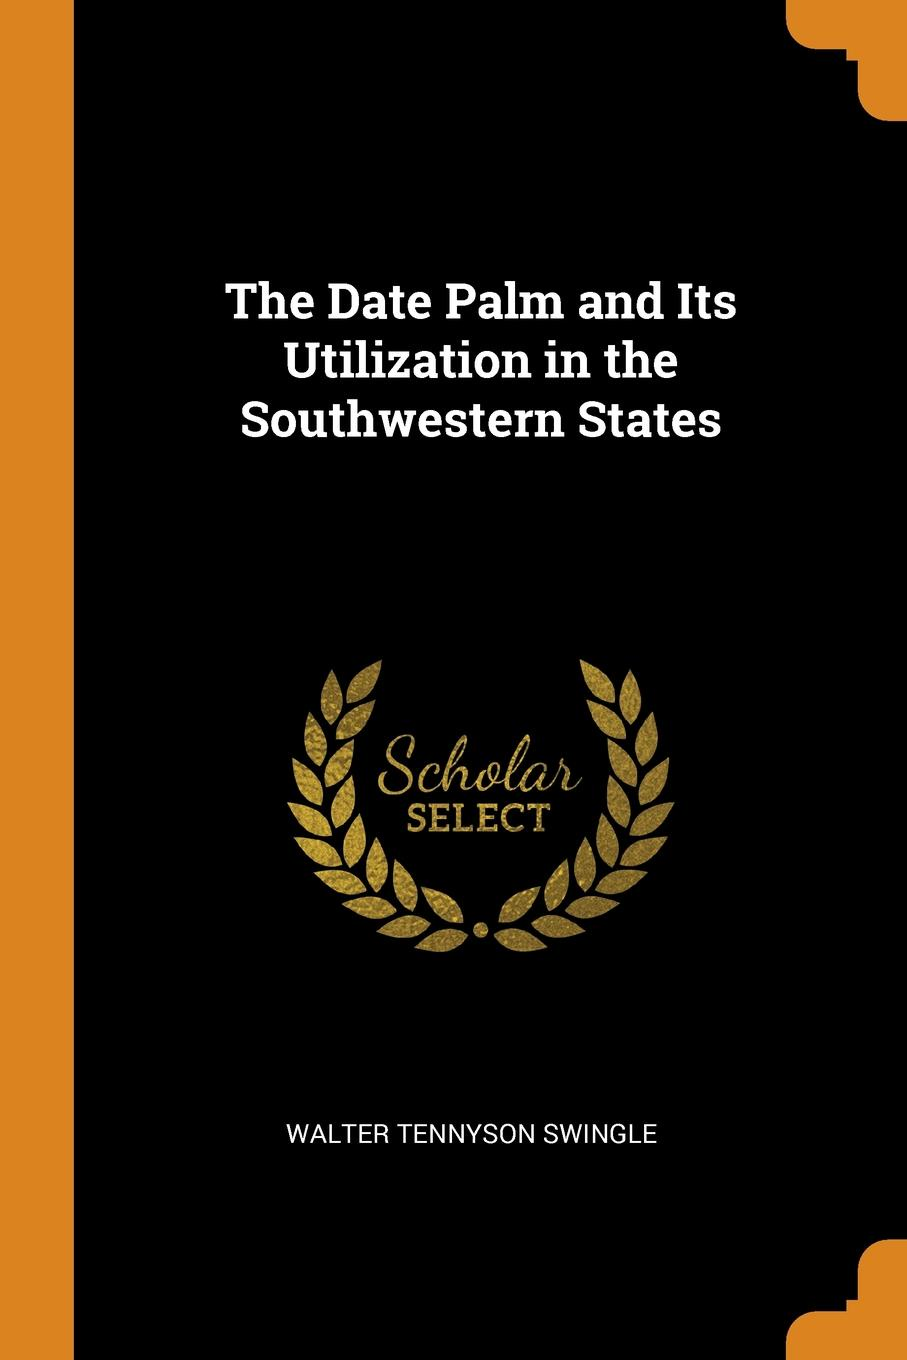 The Date Palm and Its Utilization in the Southwestern States. Walter Tennyson Swingle